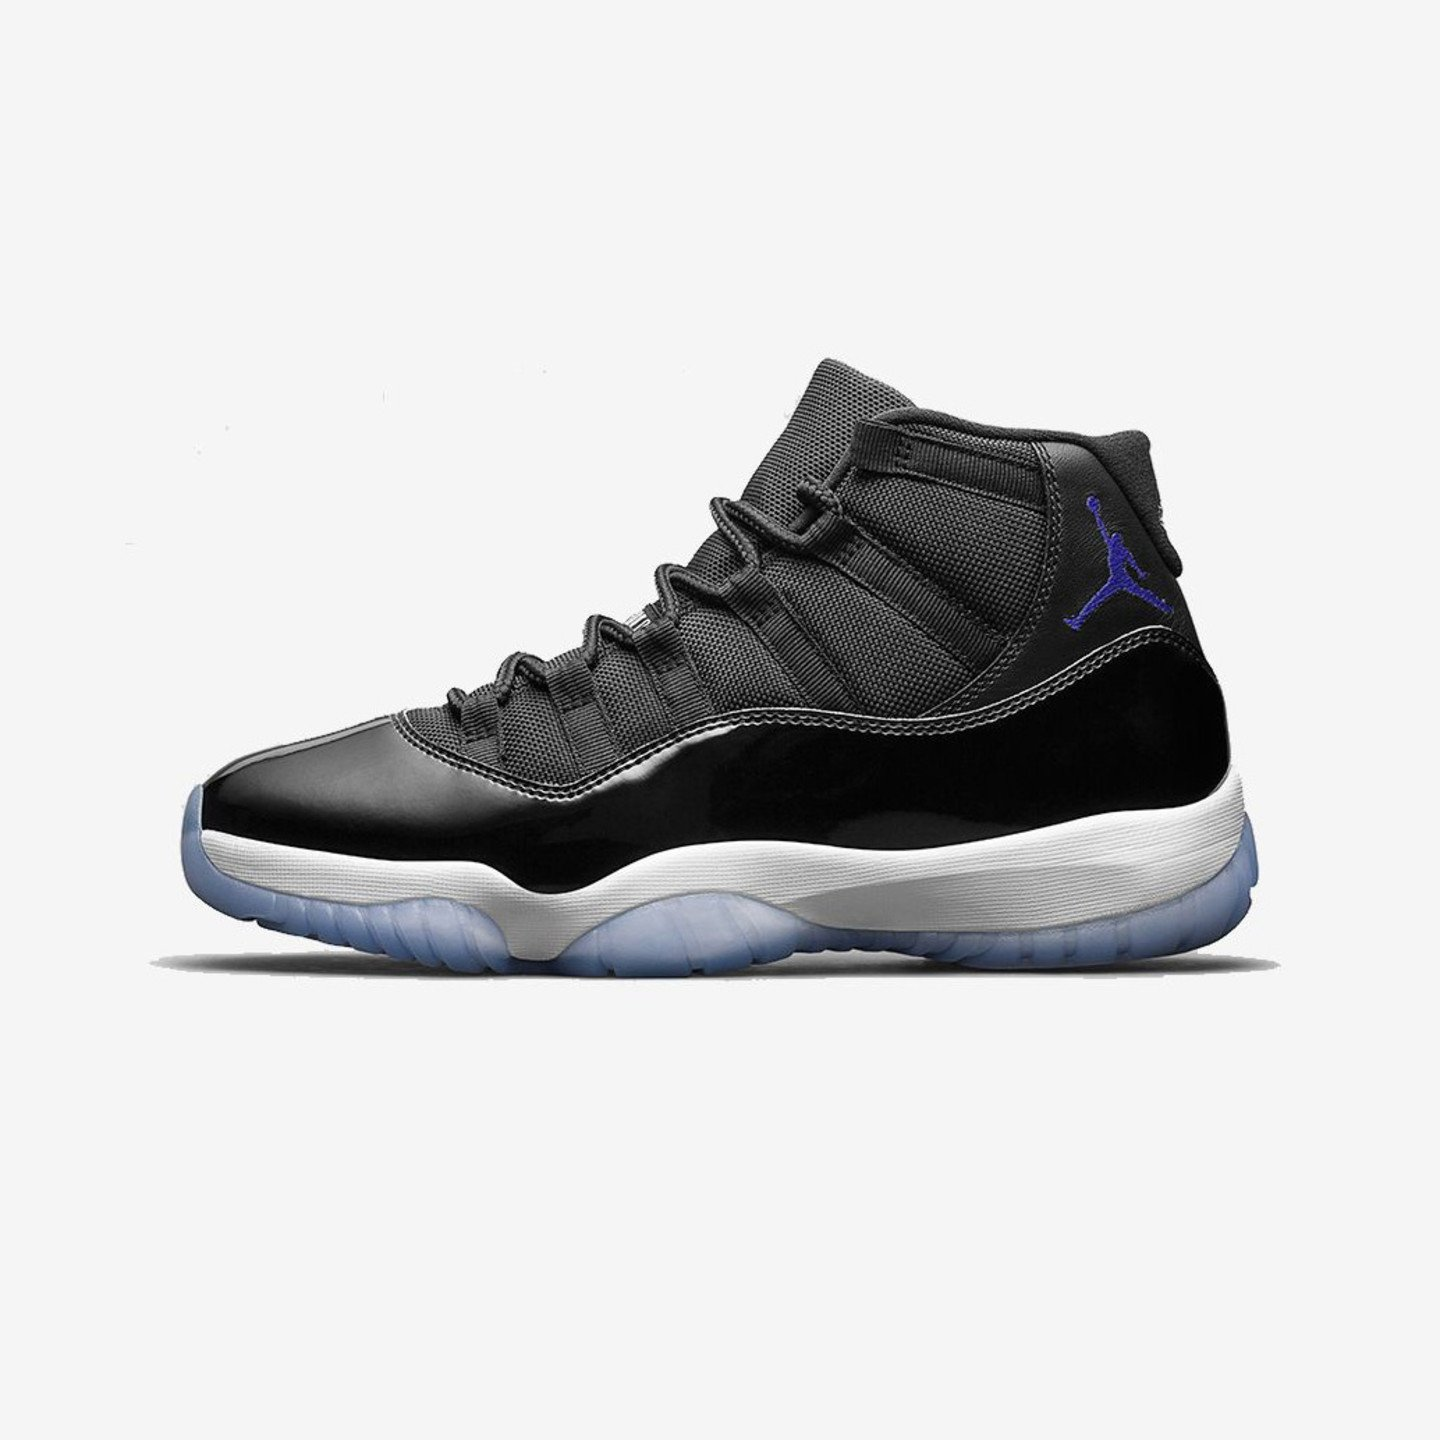 Jordan Air Jordan 11 Retro GS  'Space Jam' Black / Concord / White 378038-003-36.5